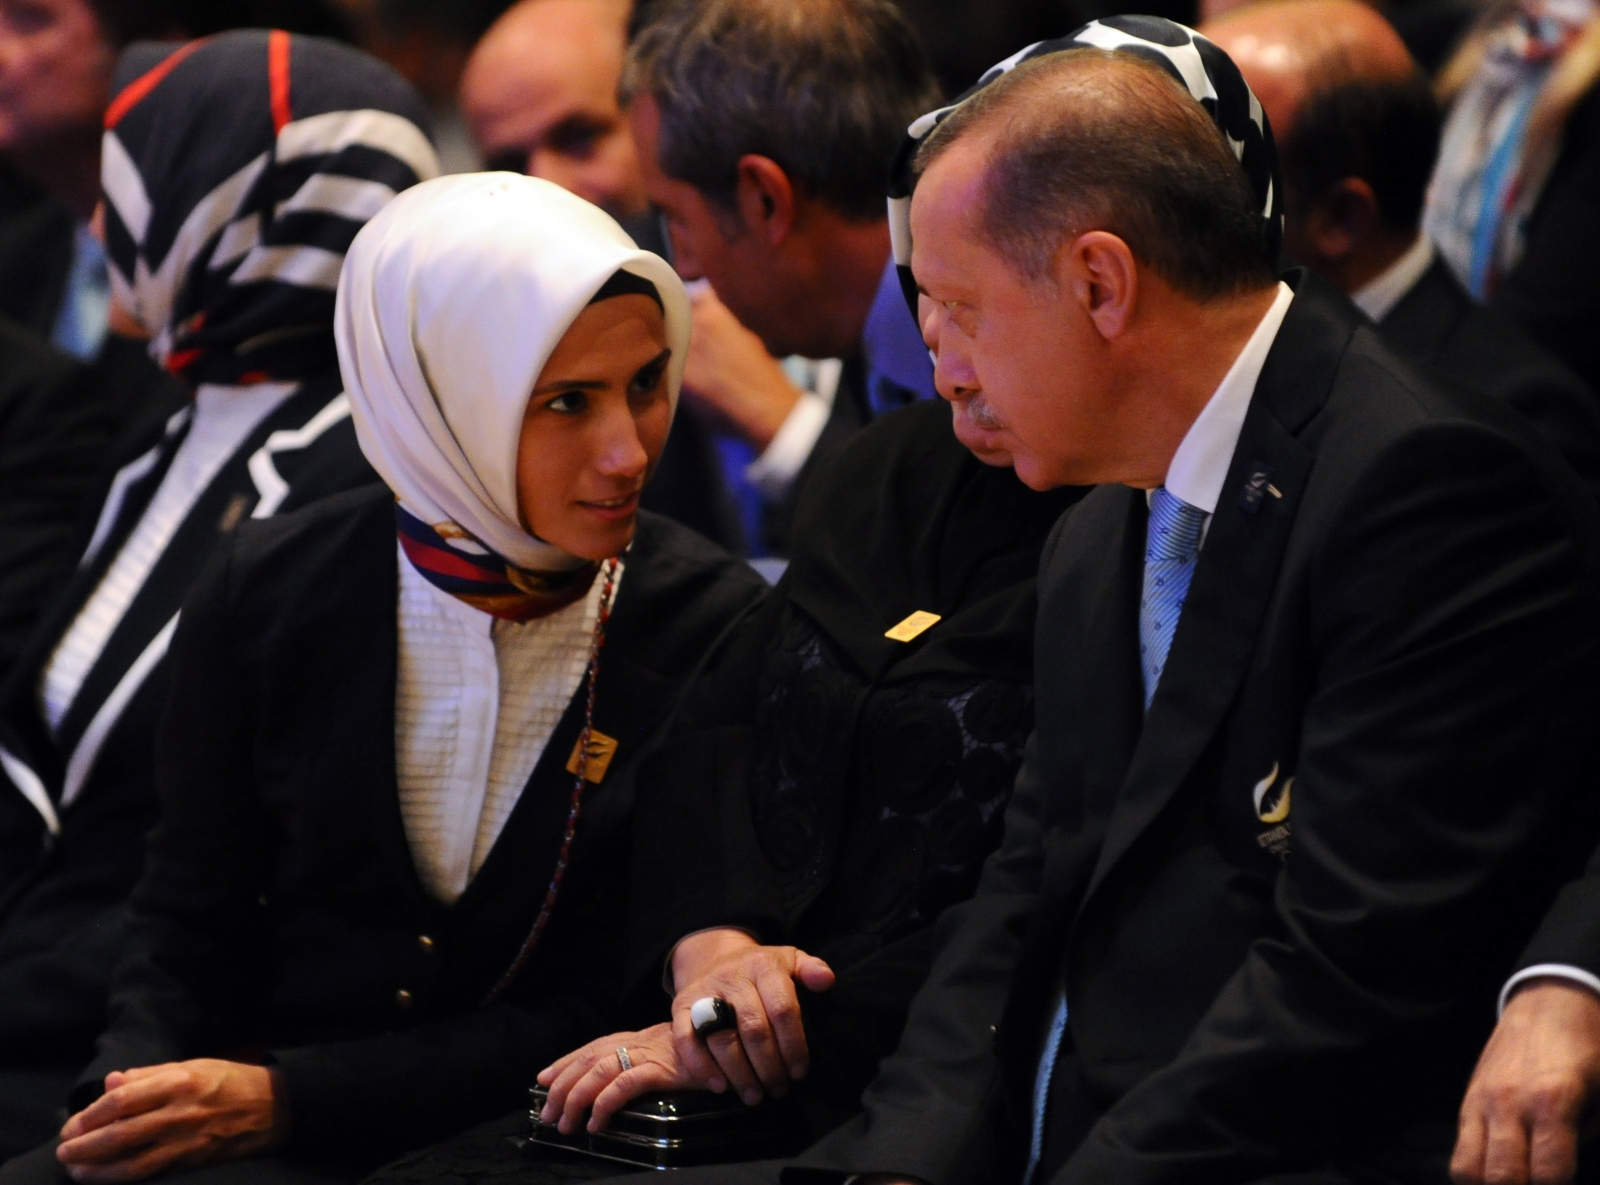 Turkey: Sumeyye Erdogan Says Men Inheriting More Than Women Is 'normal, Fair And Righteous